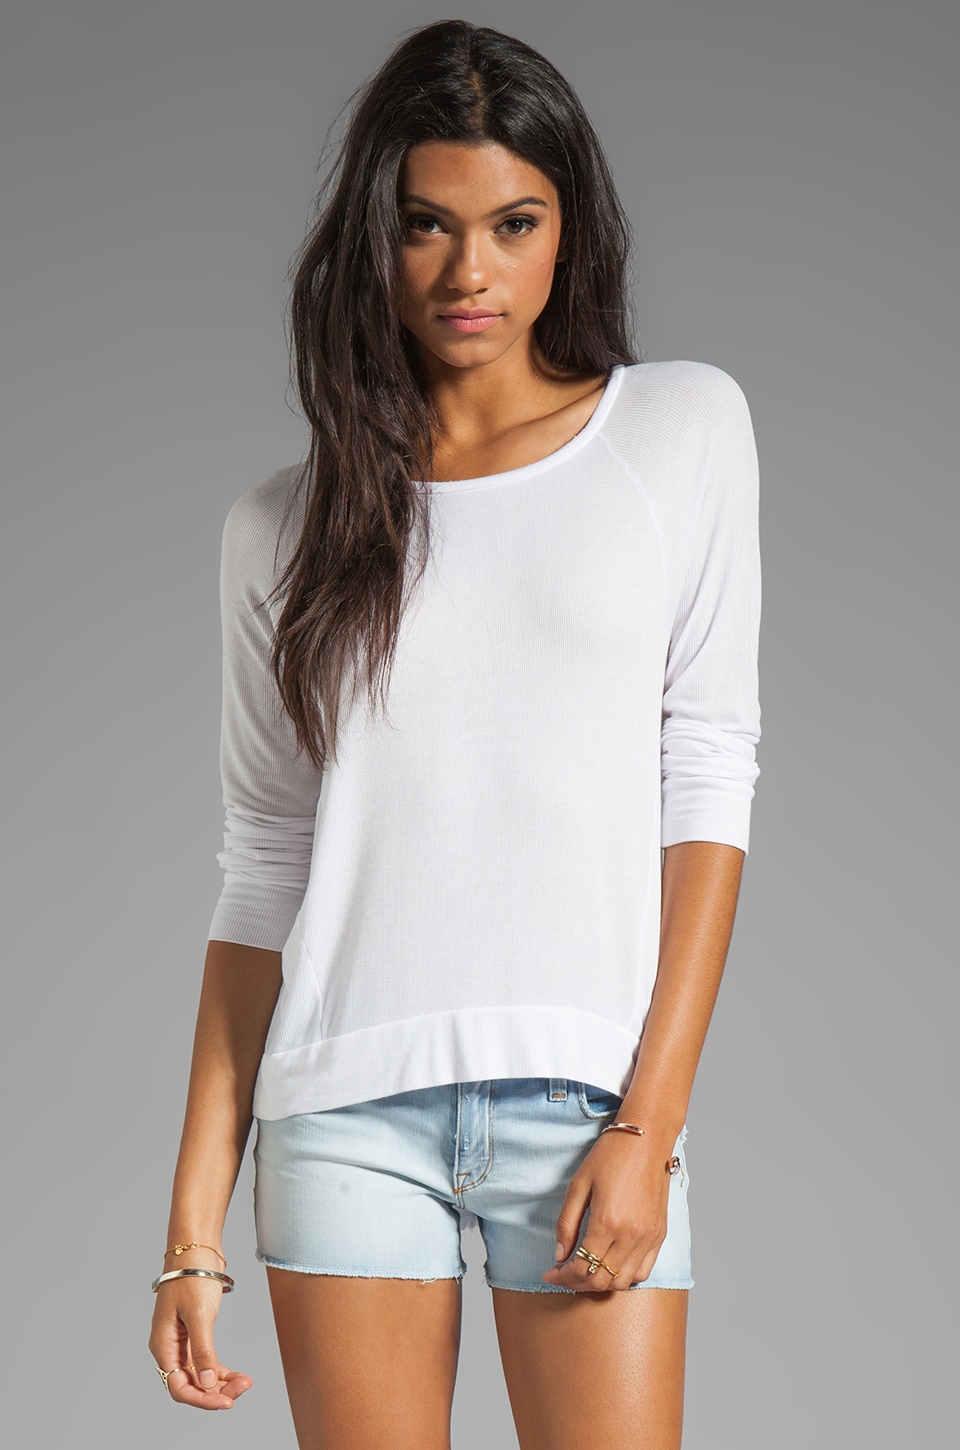 dolan 2x1 Rib Raglan Long Sleeve Tee in White